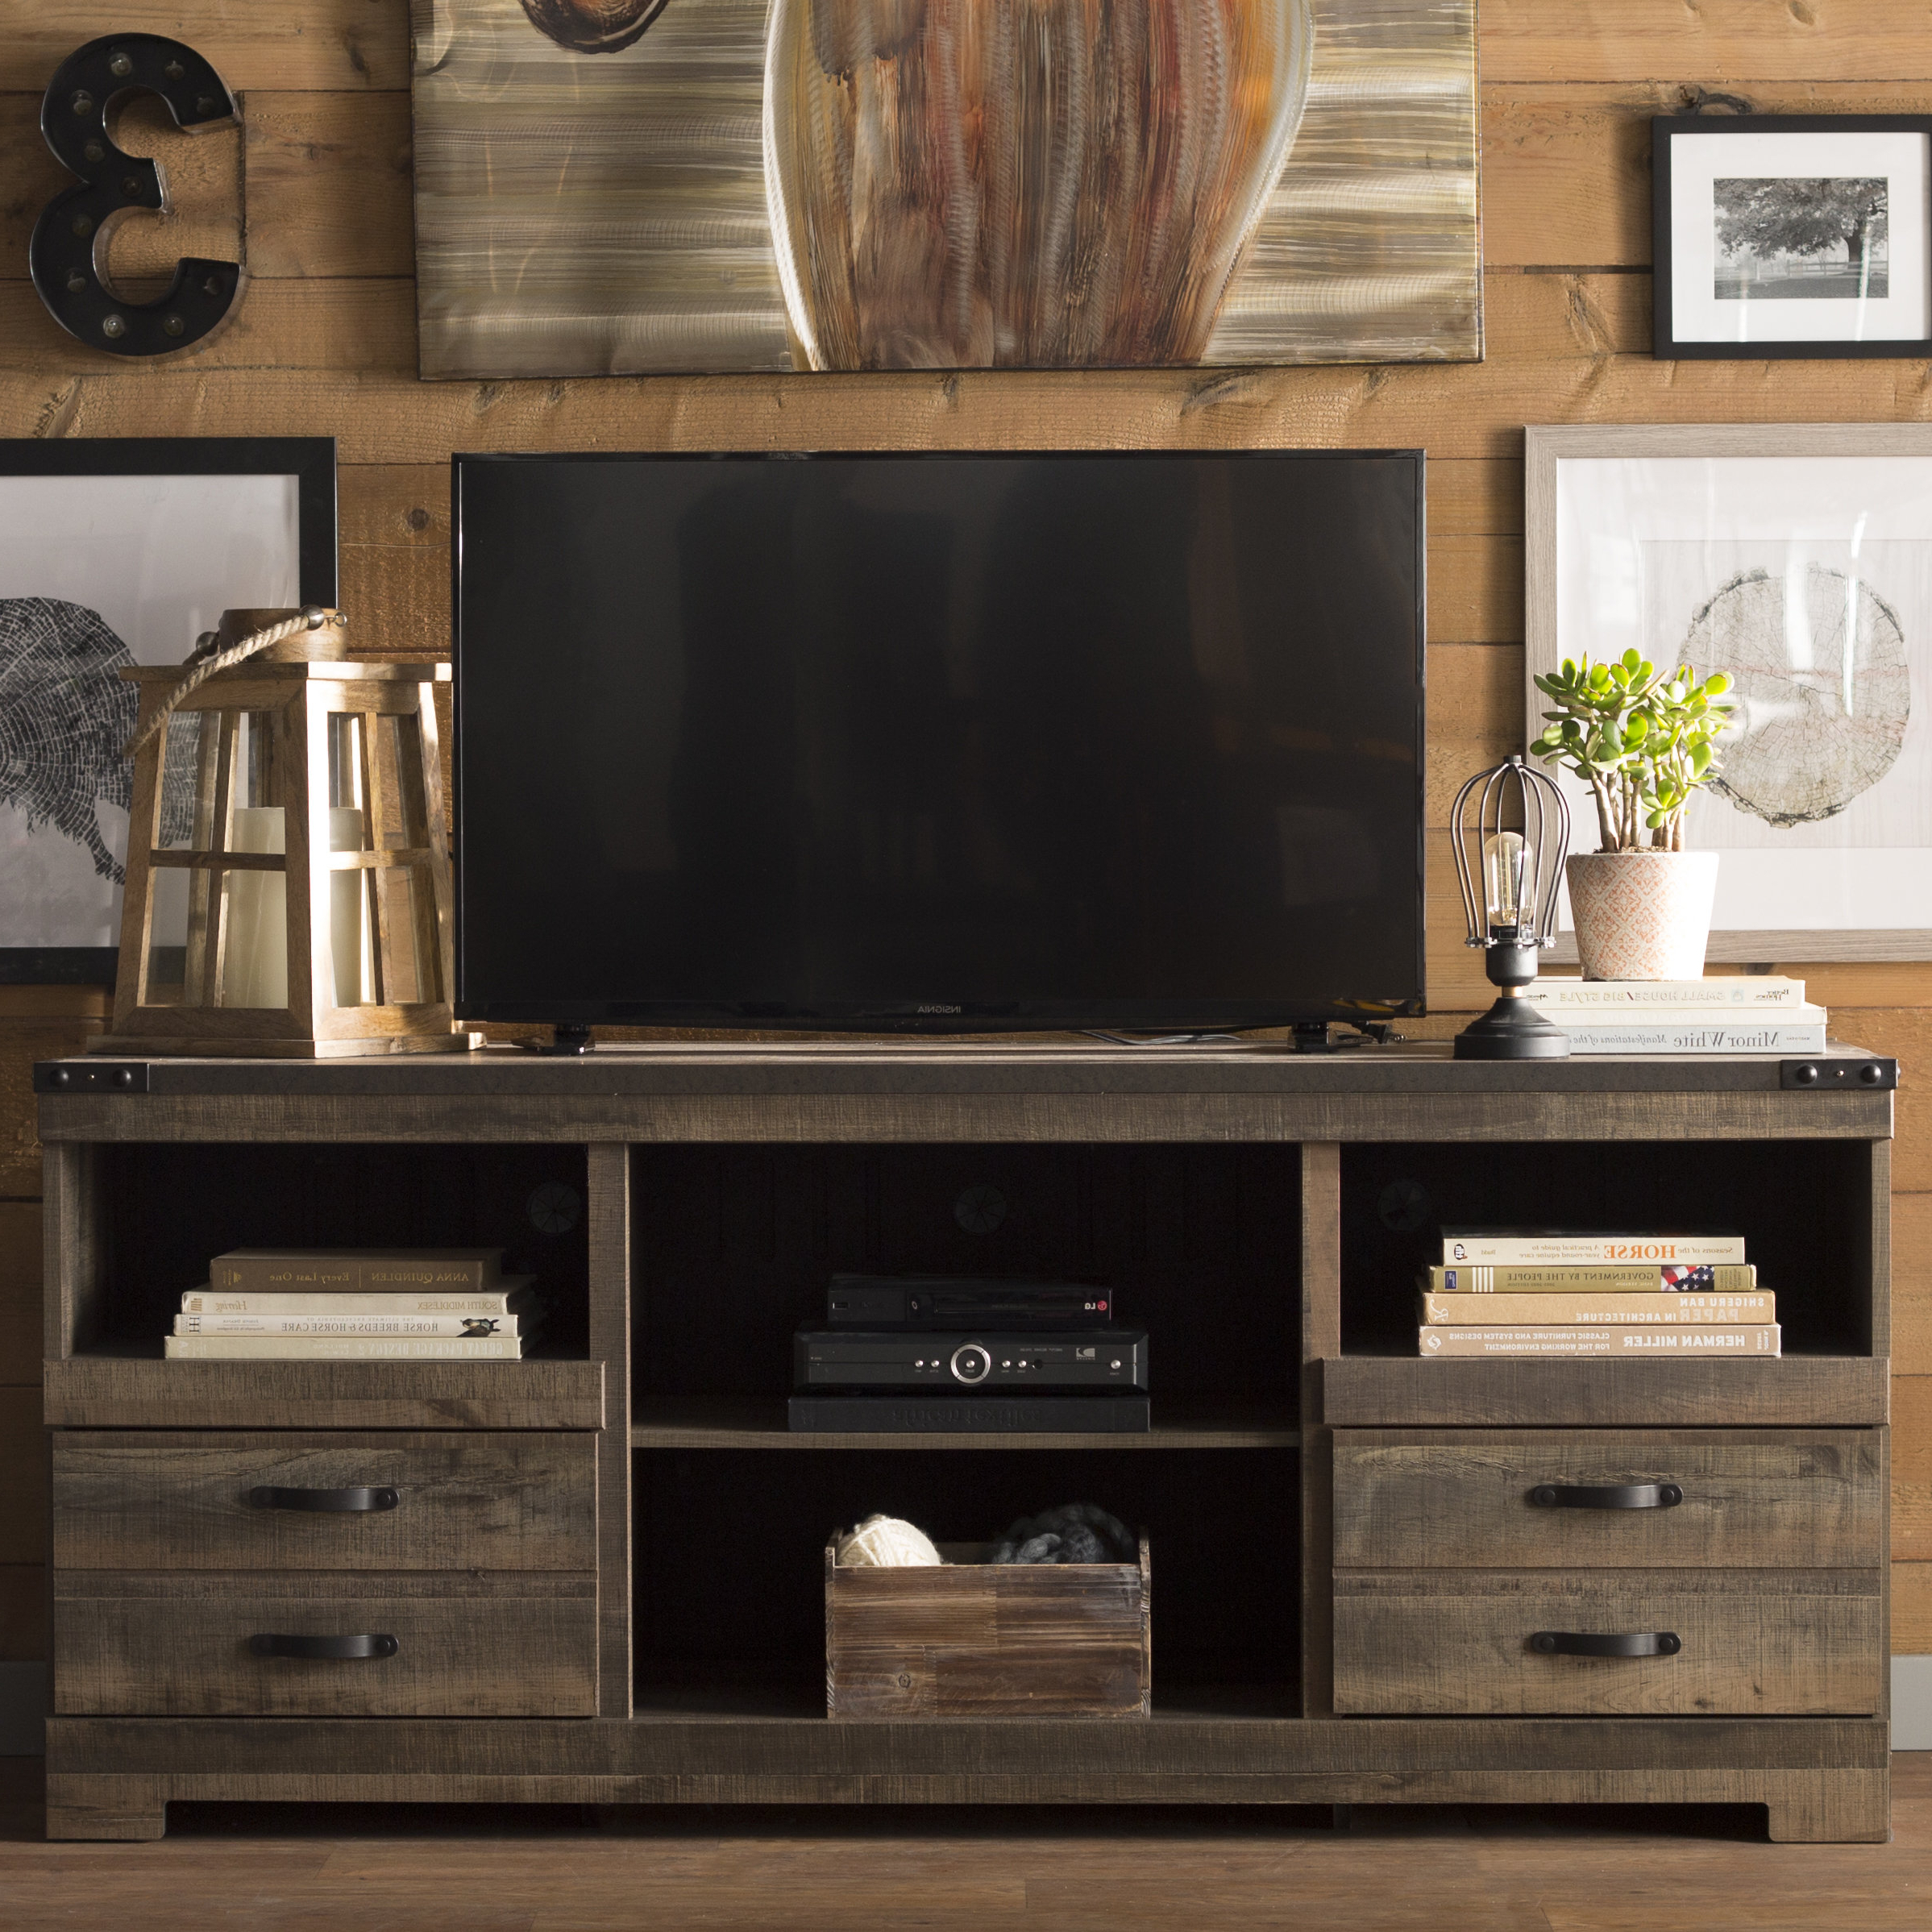 60 69 Inches Tv Stands | Birch Lane For Edwin Black 64 Inch Tv Stands (View 18 of 20)